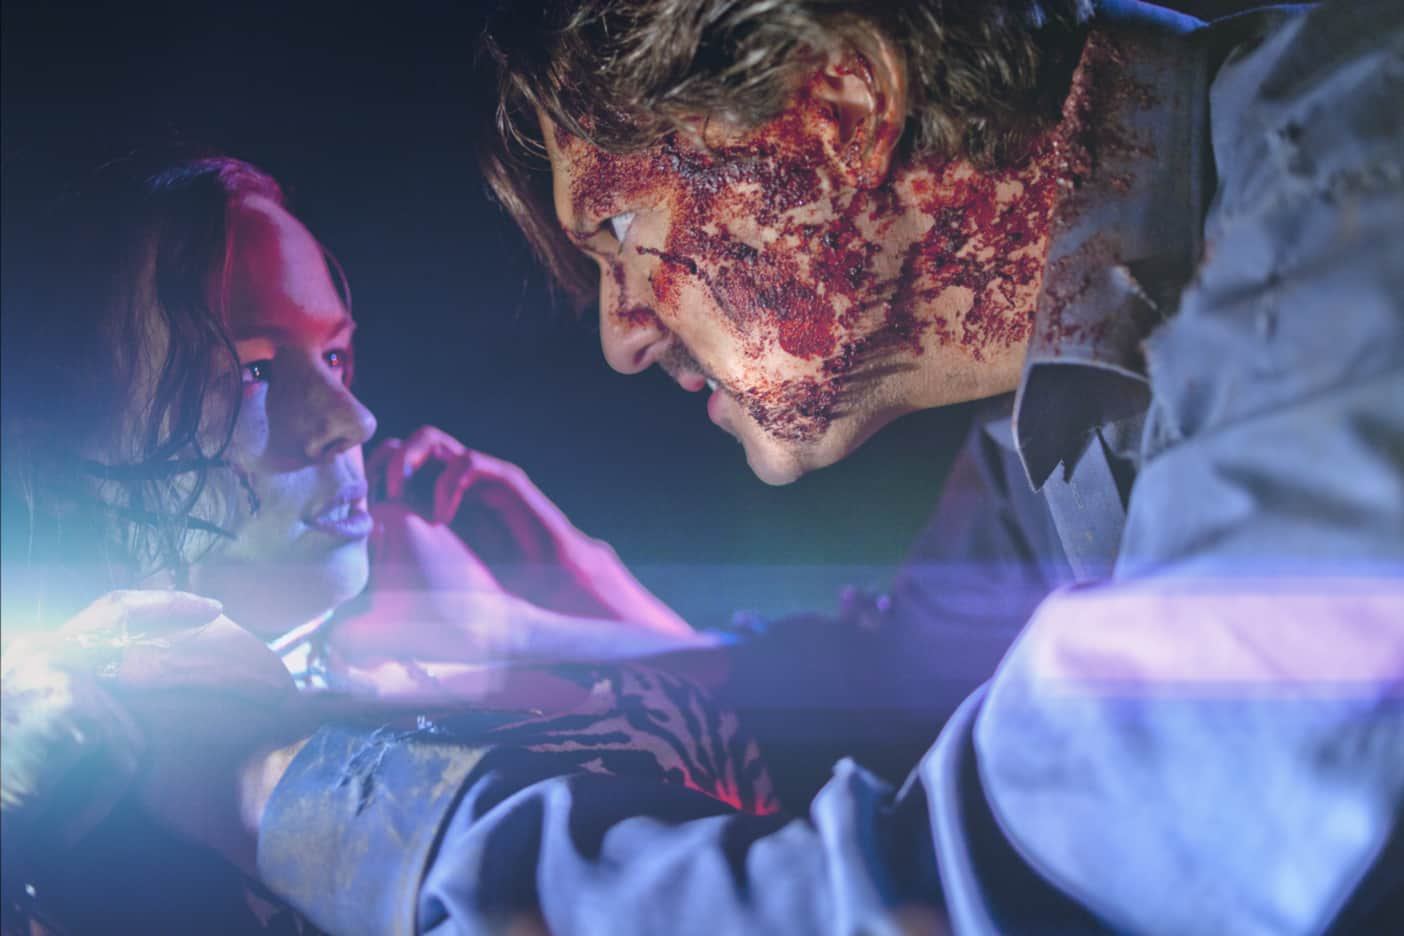 film reviews | movies | features | BRWC NSFW Clip From Devil's Mile Starring David Hayter